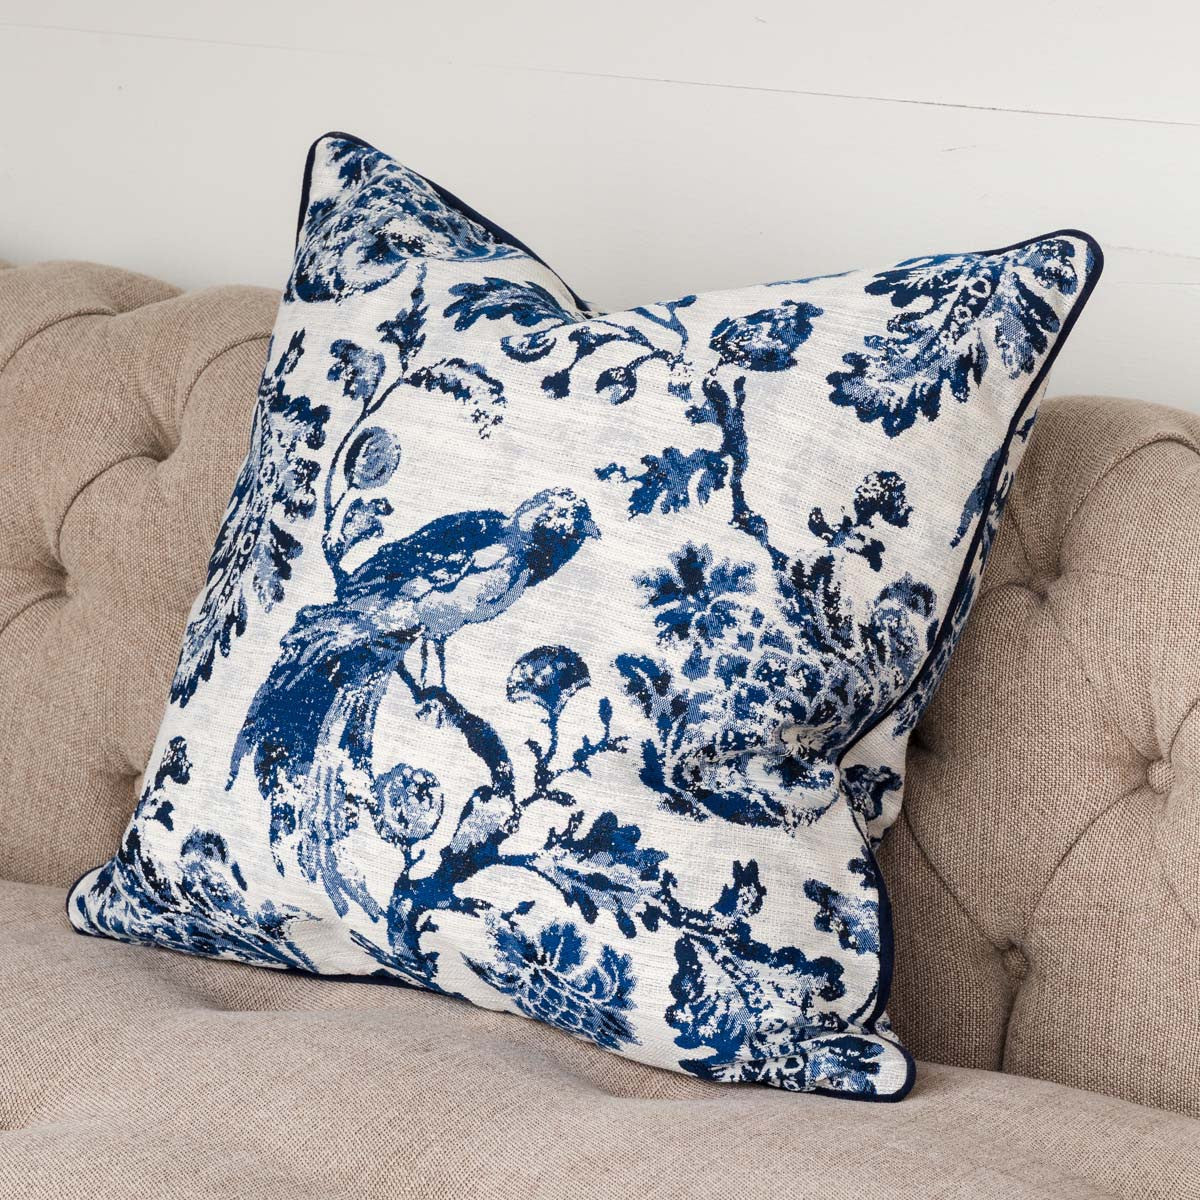 Blue & White Bird Pillow